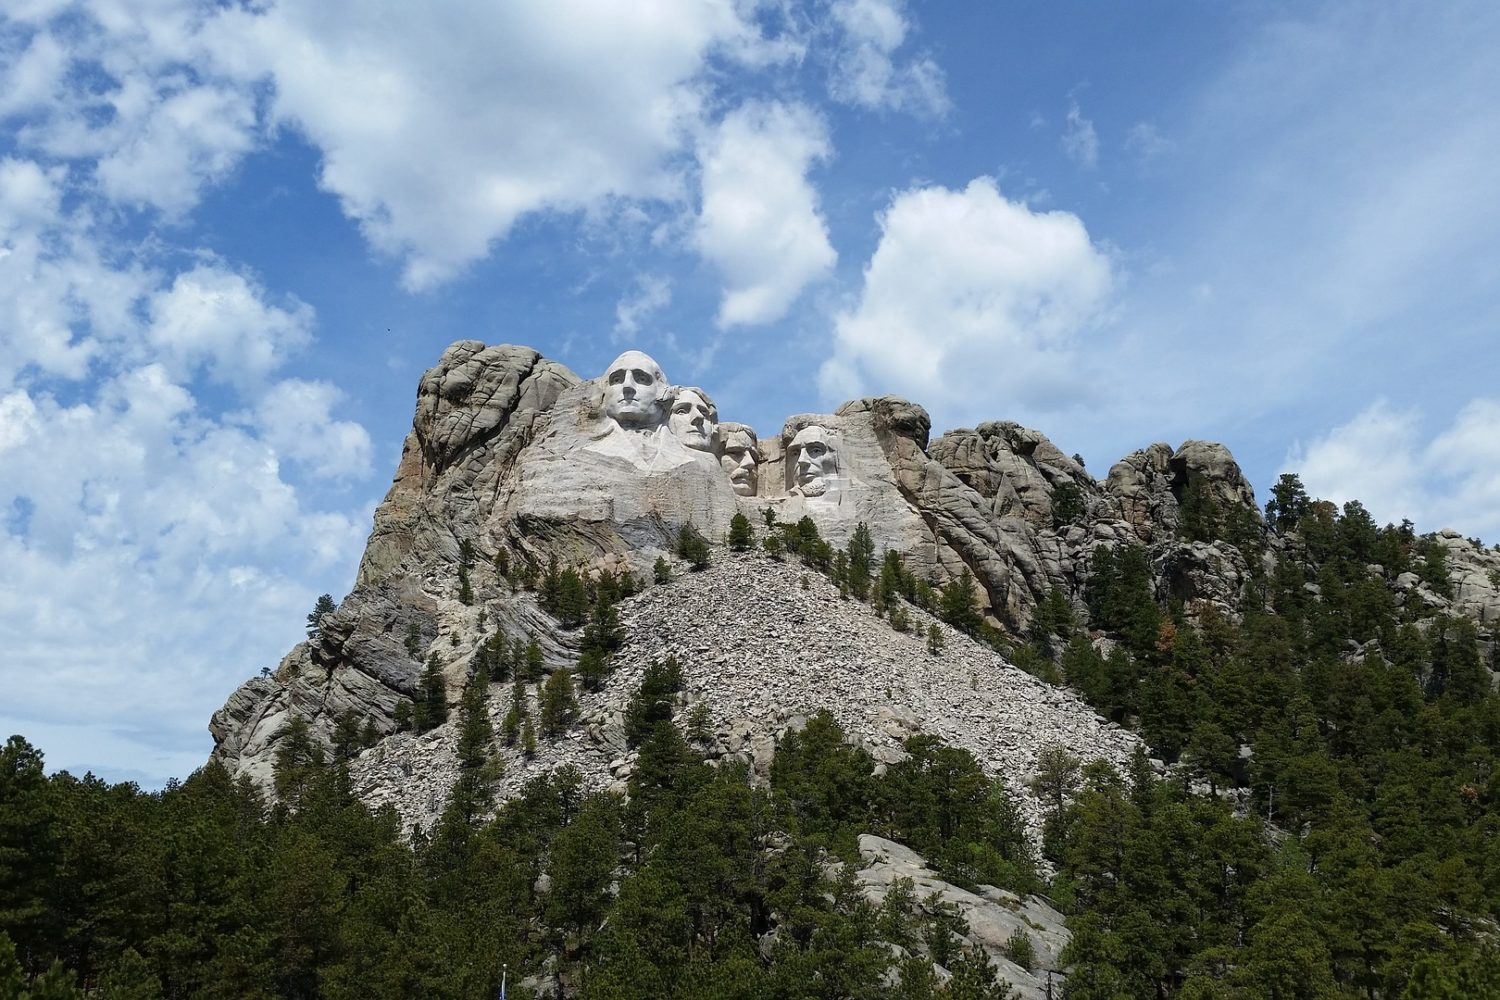 Iconic Mount Rushmore, a national landmark